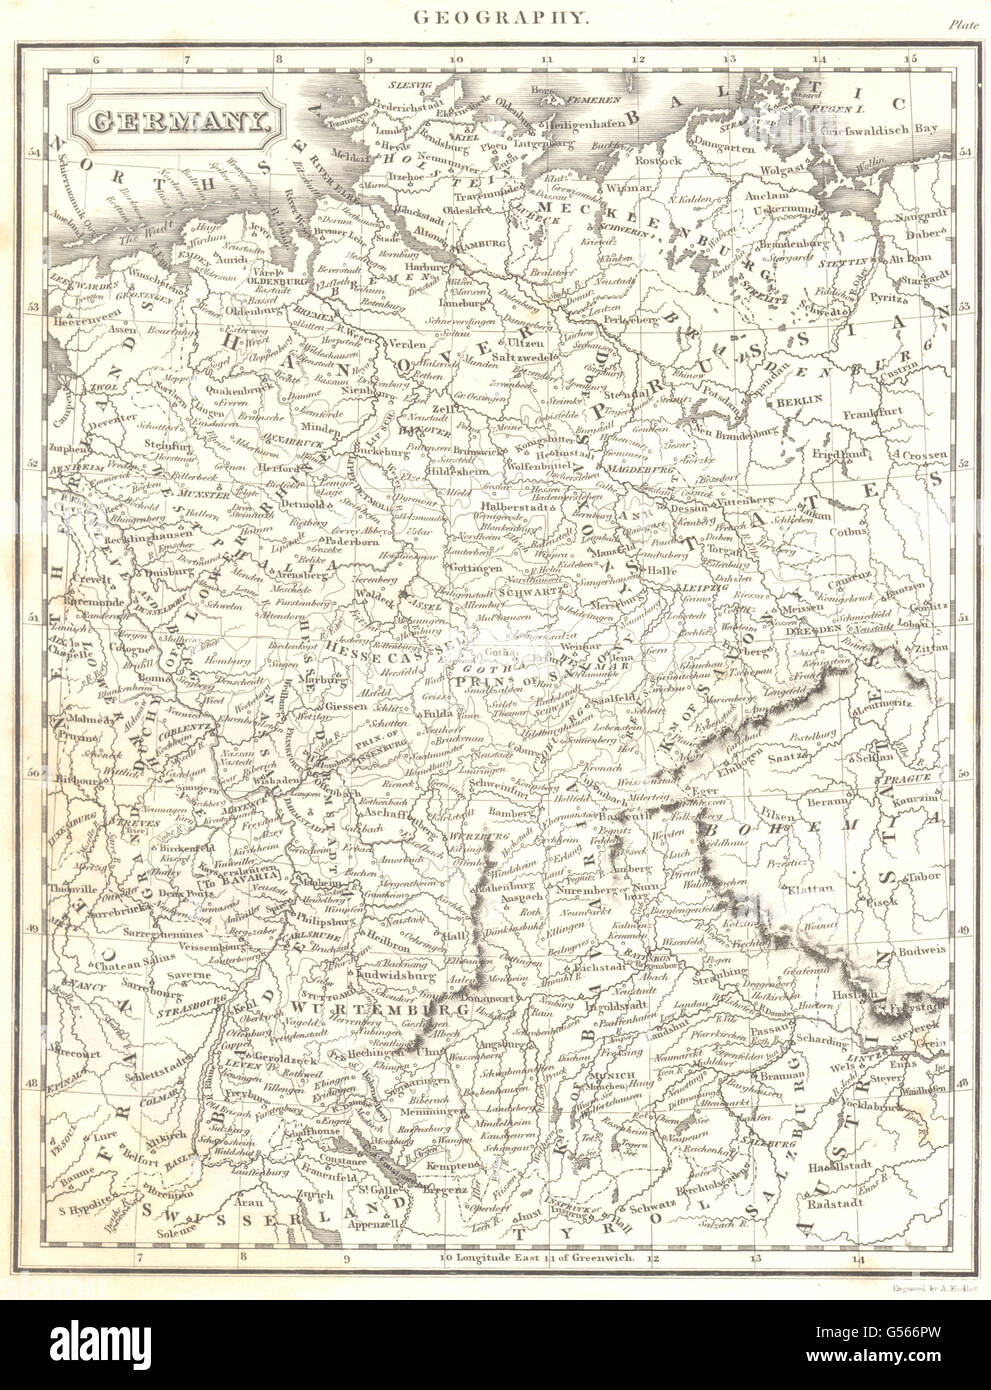 GERMANY: Map. (Oxford Encyclopaedia), 1830 - Stock Image